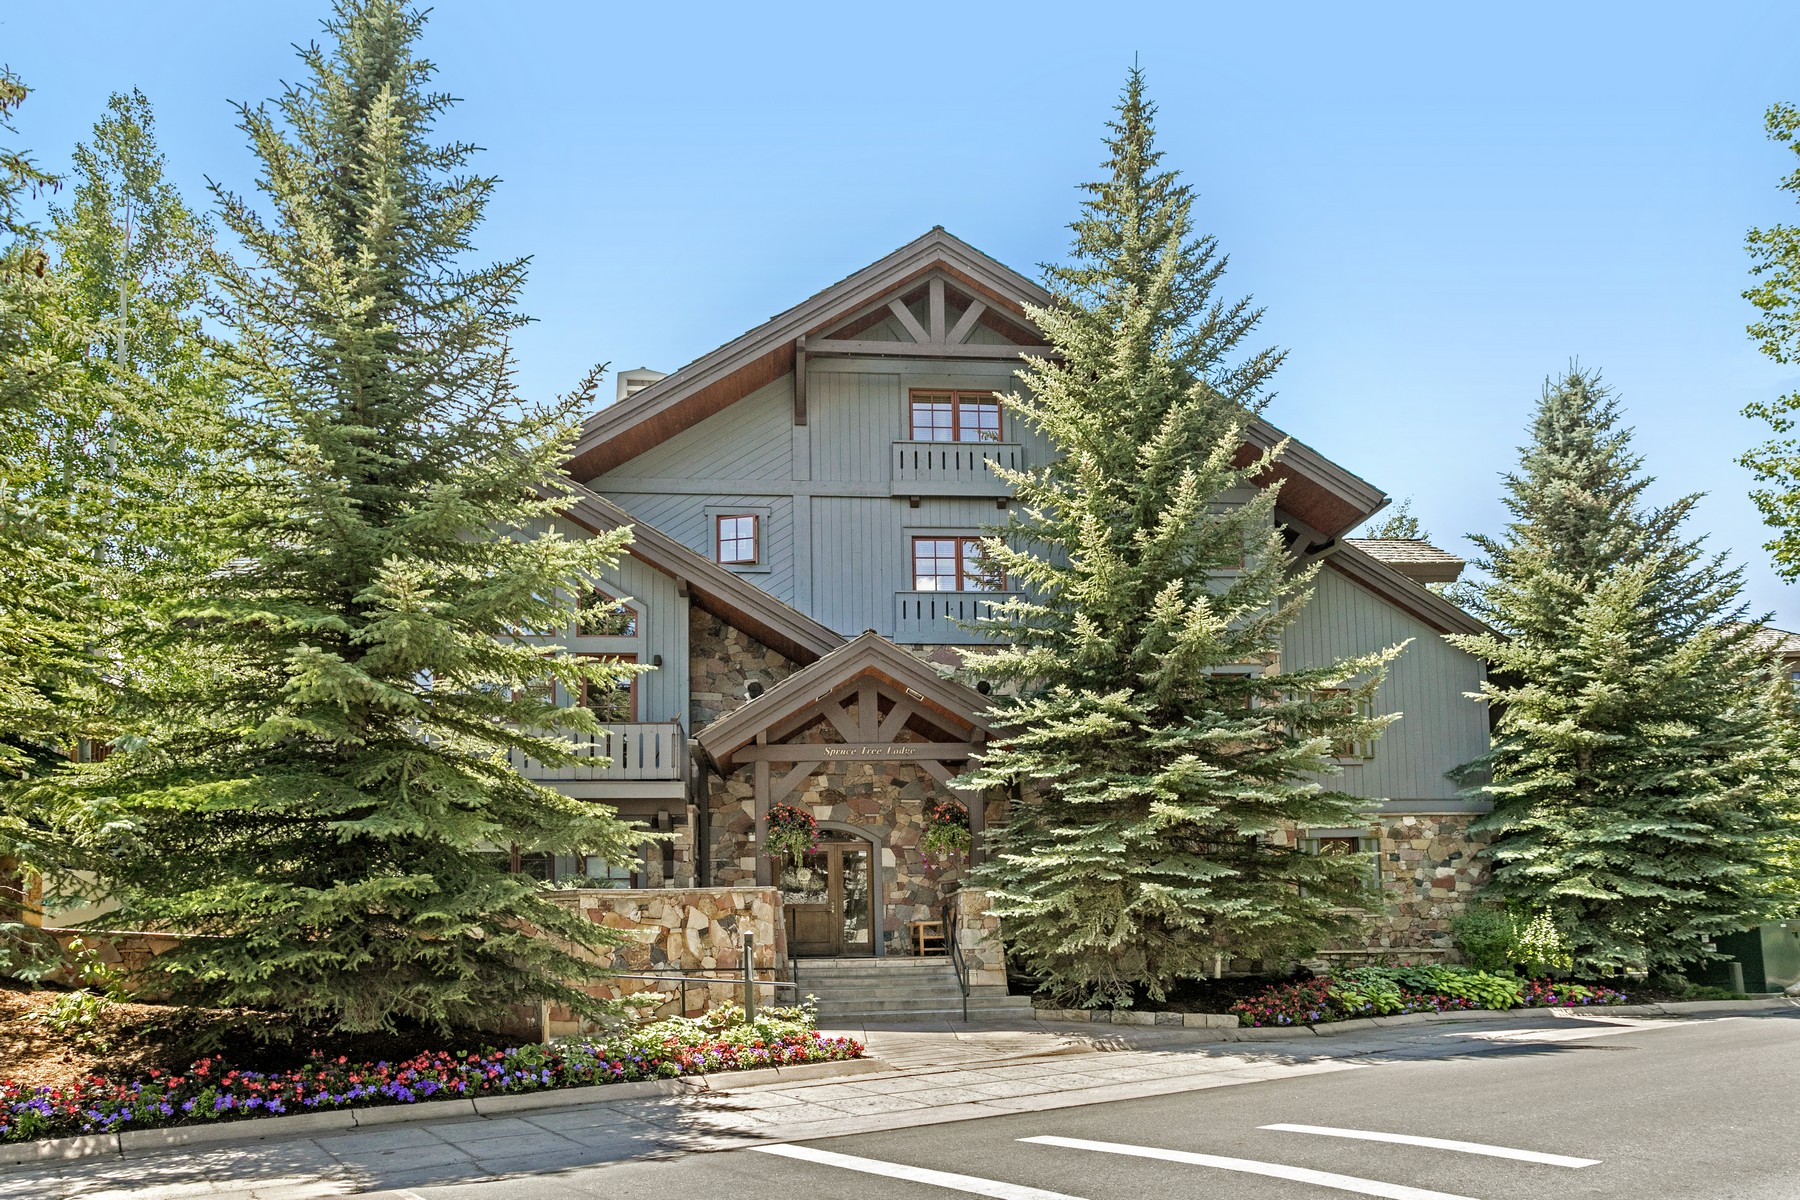 Property for Active at Spruce Tree Lodge #207 627 Sawatch Drive #207 Edwards, Colorado 81632 United States